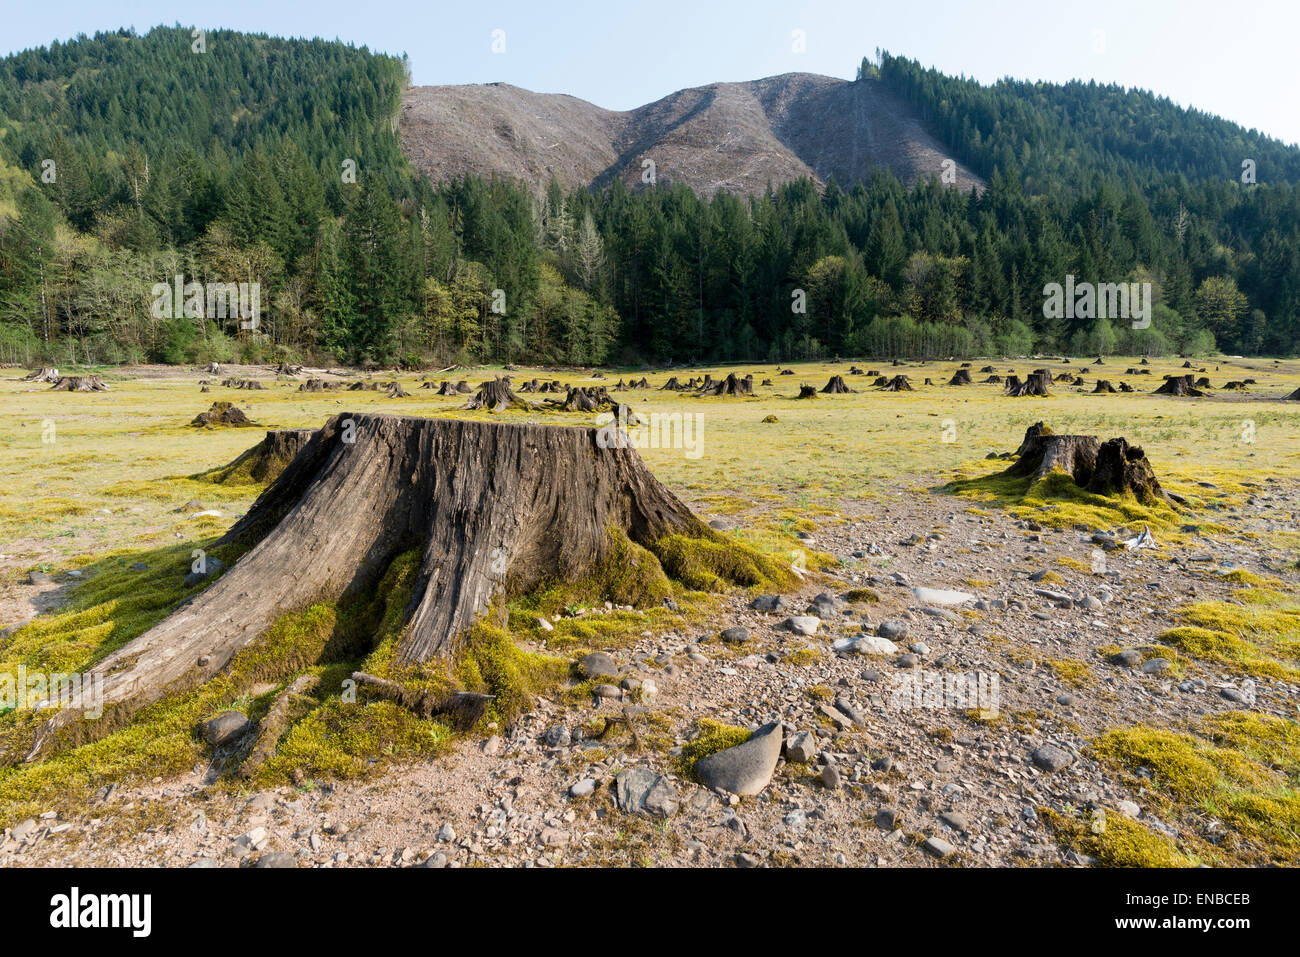 Tree stumps on the receded lake bed of Green Peter Reservoir in Oregon. - Stock Image